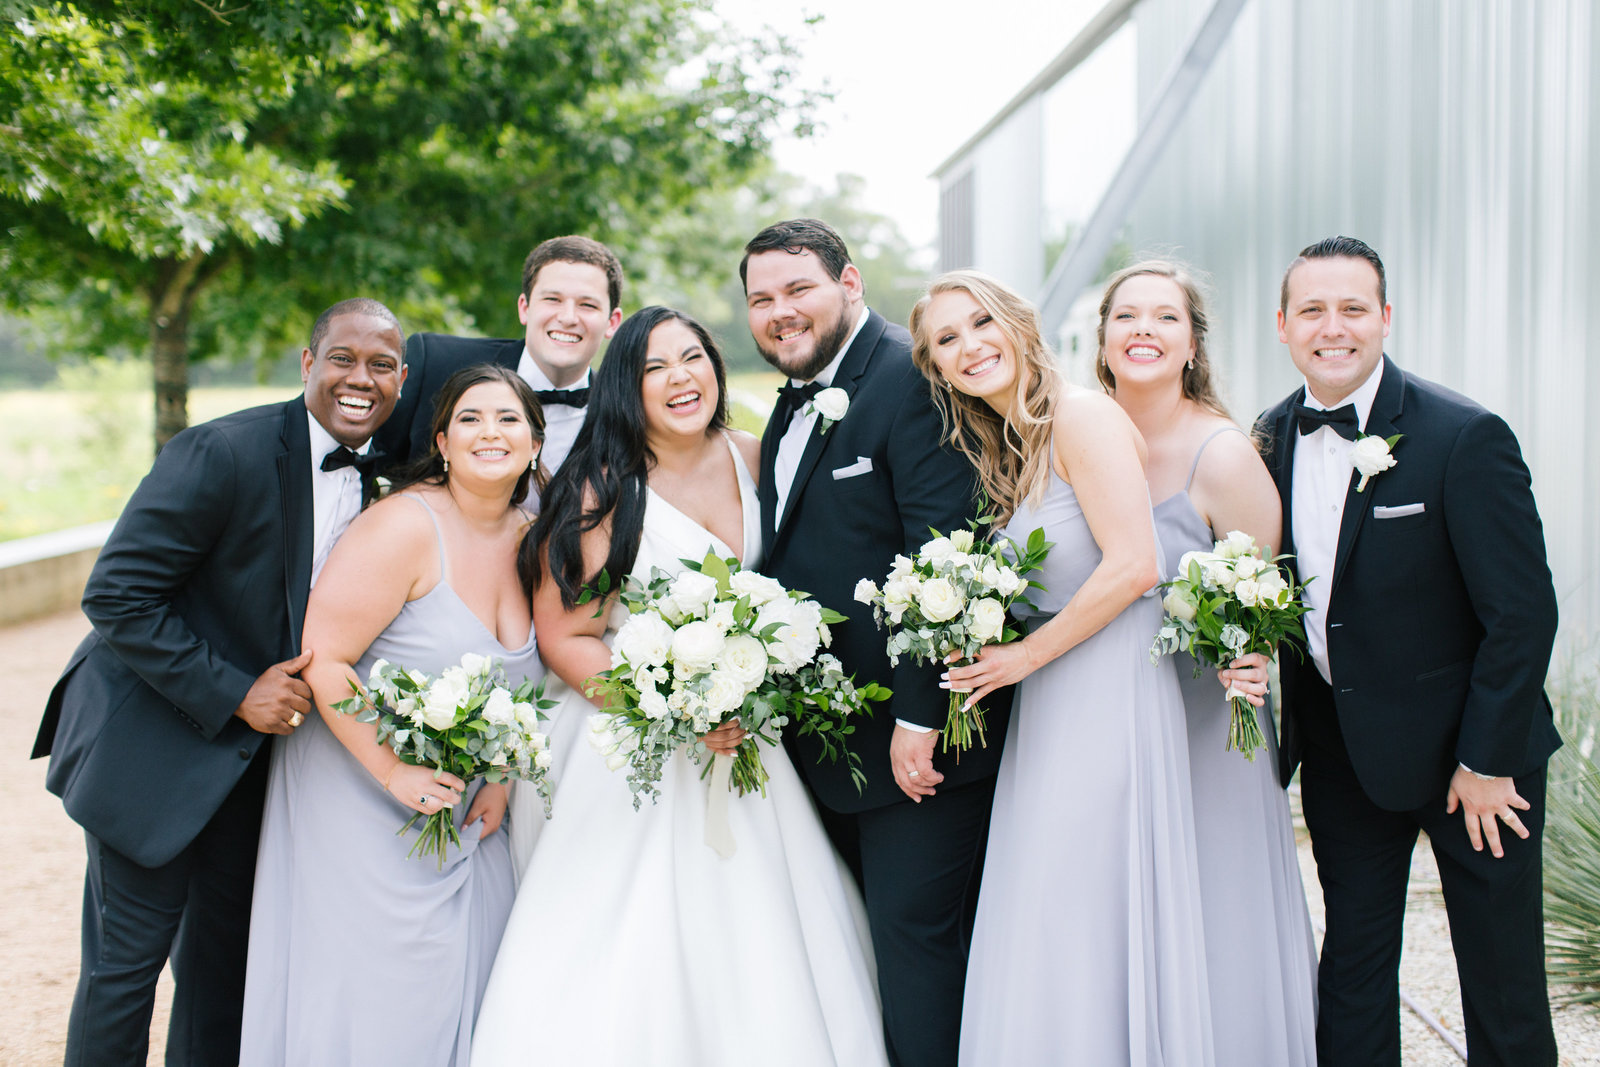 Outdoor wedding in Dripping Springs with white florals, tuxedos, and light grey bridesmaids dresses